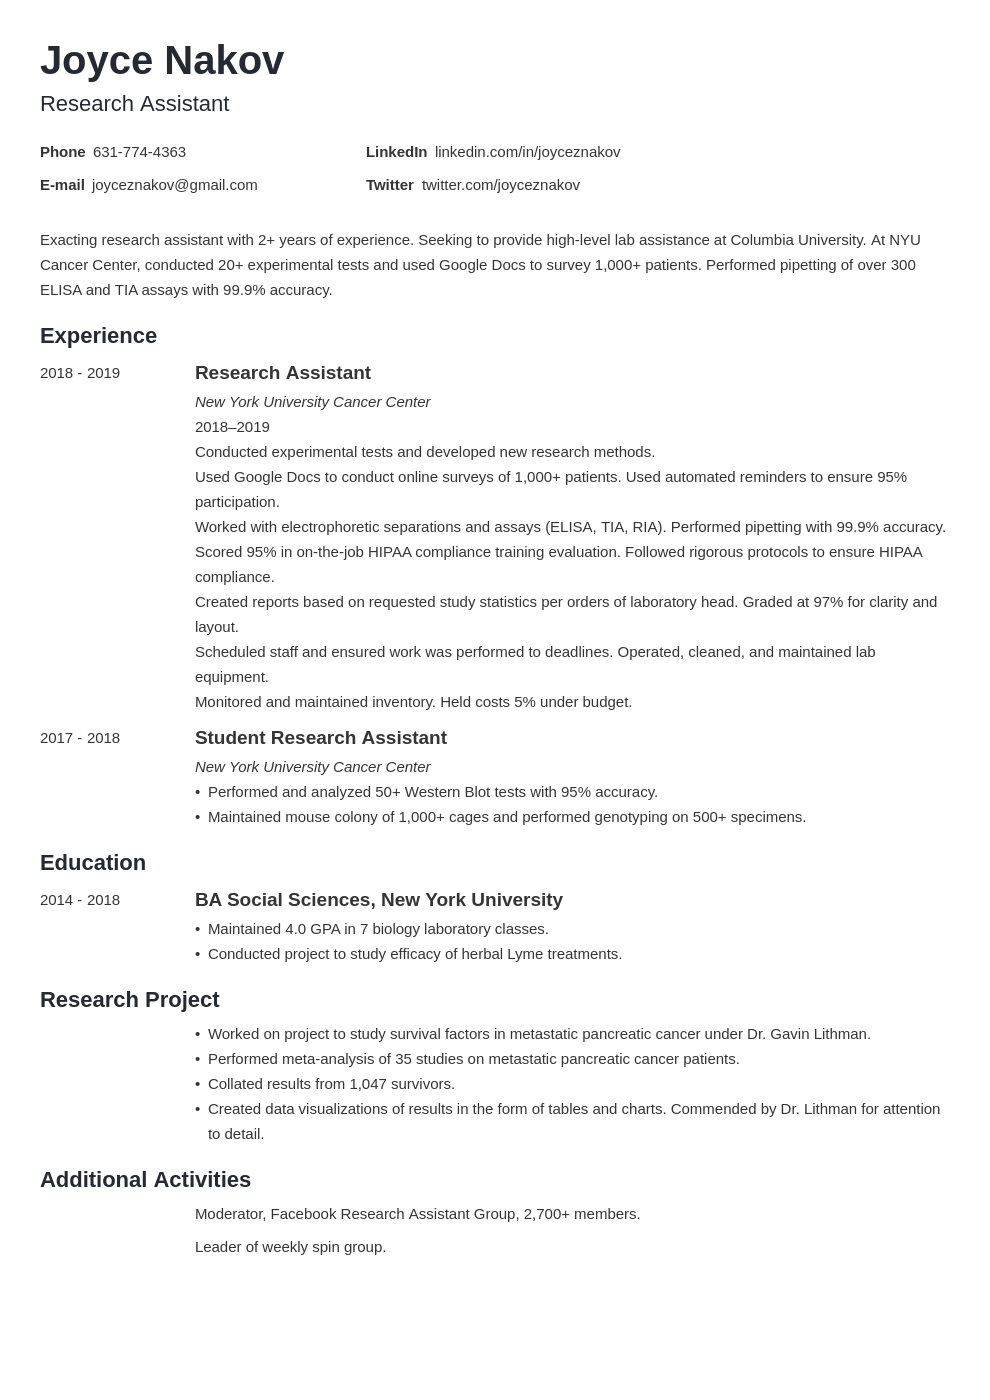 research assistant template minimo